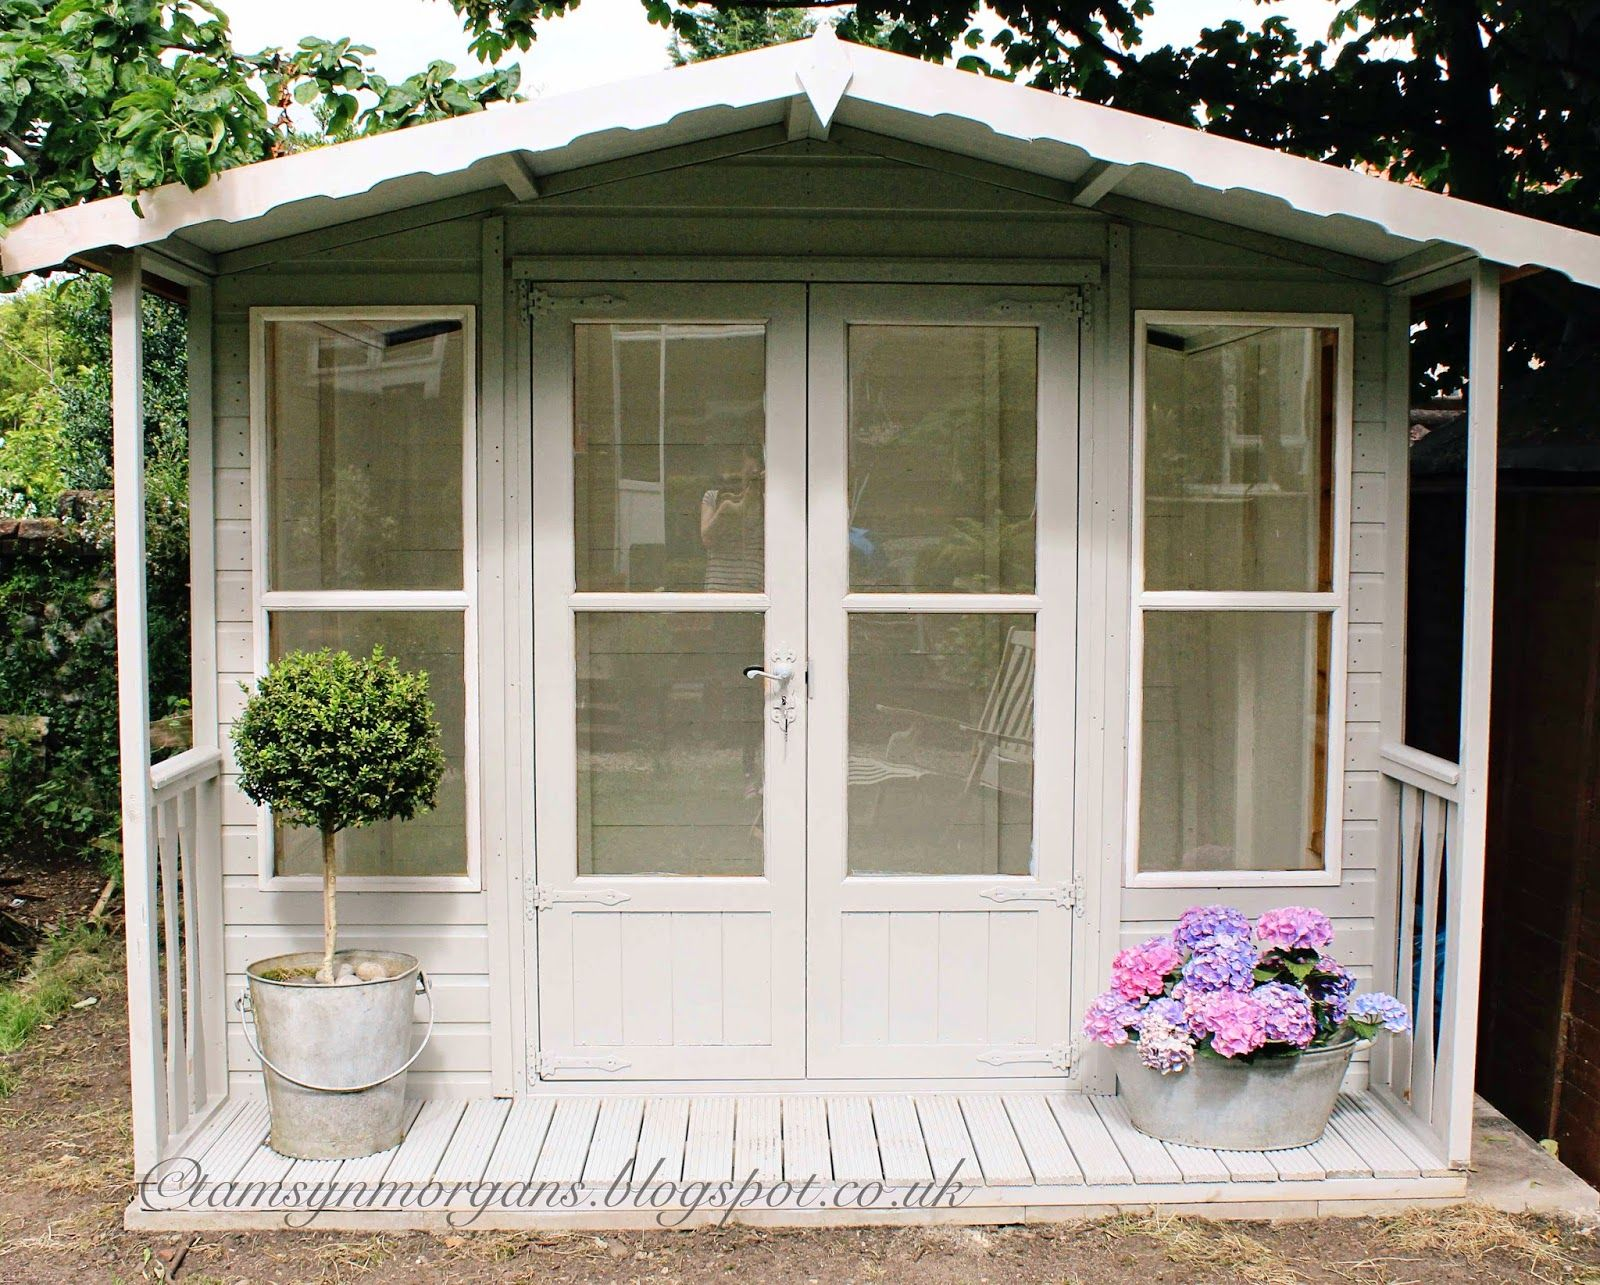 Beautiful little shabby chic cubby house or summer house for Garden designs with summer house